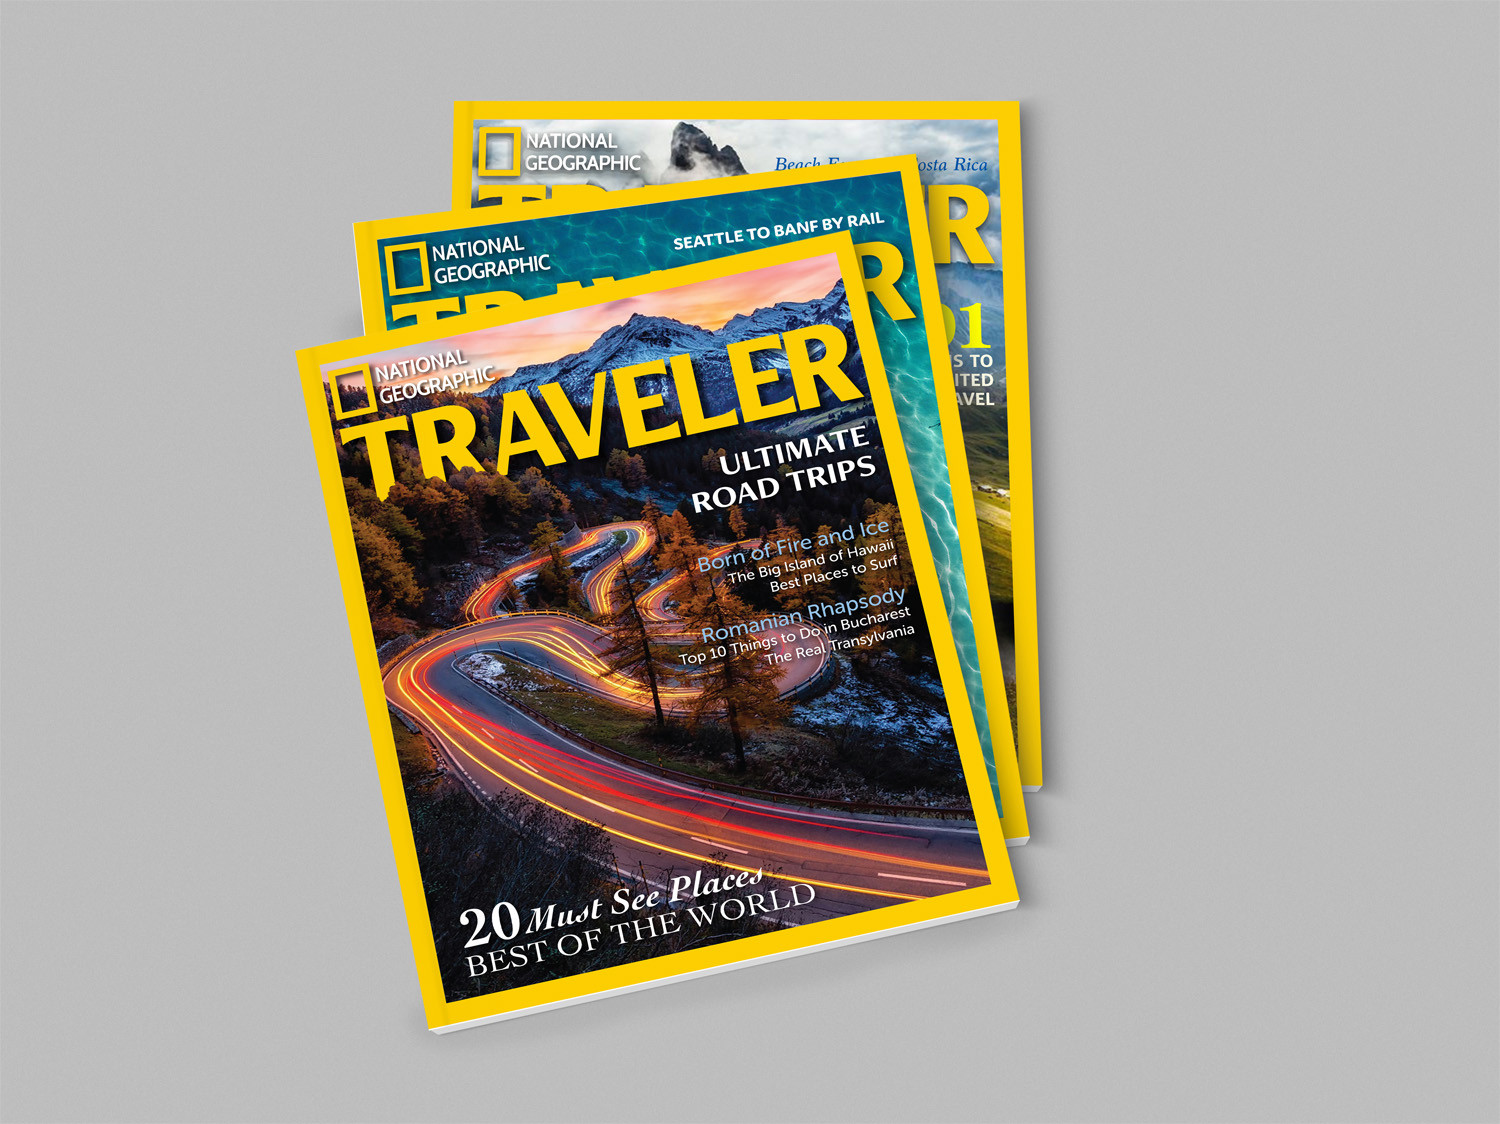 Ntl Geographic Traveler Cover Designs